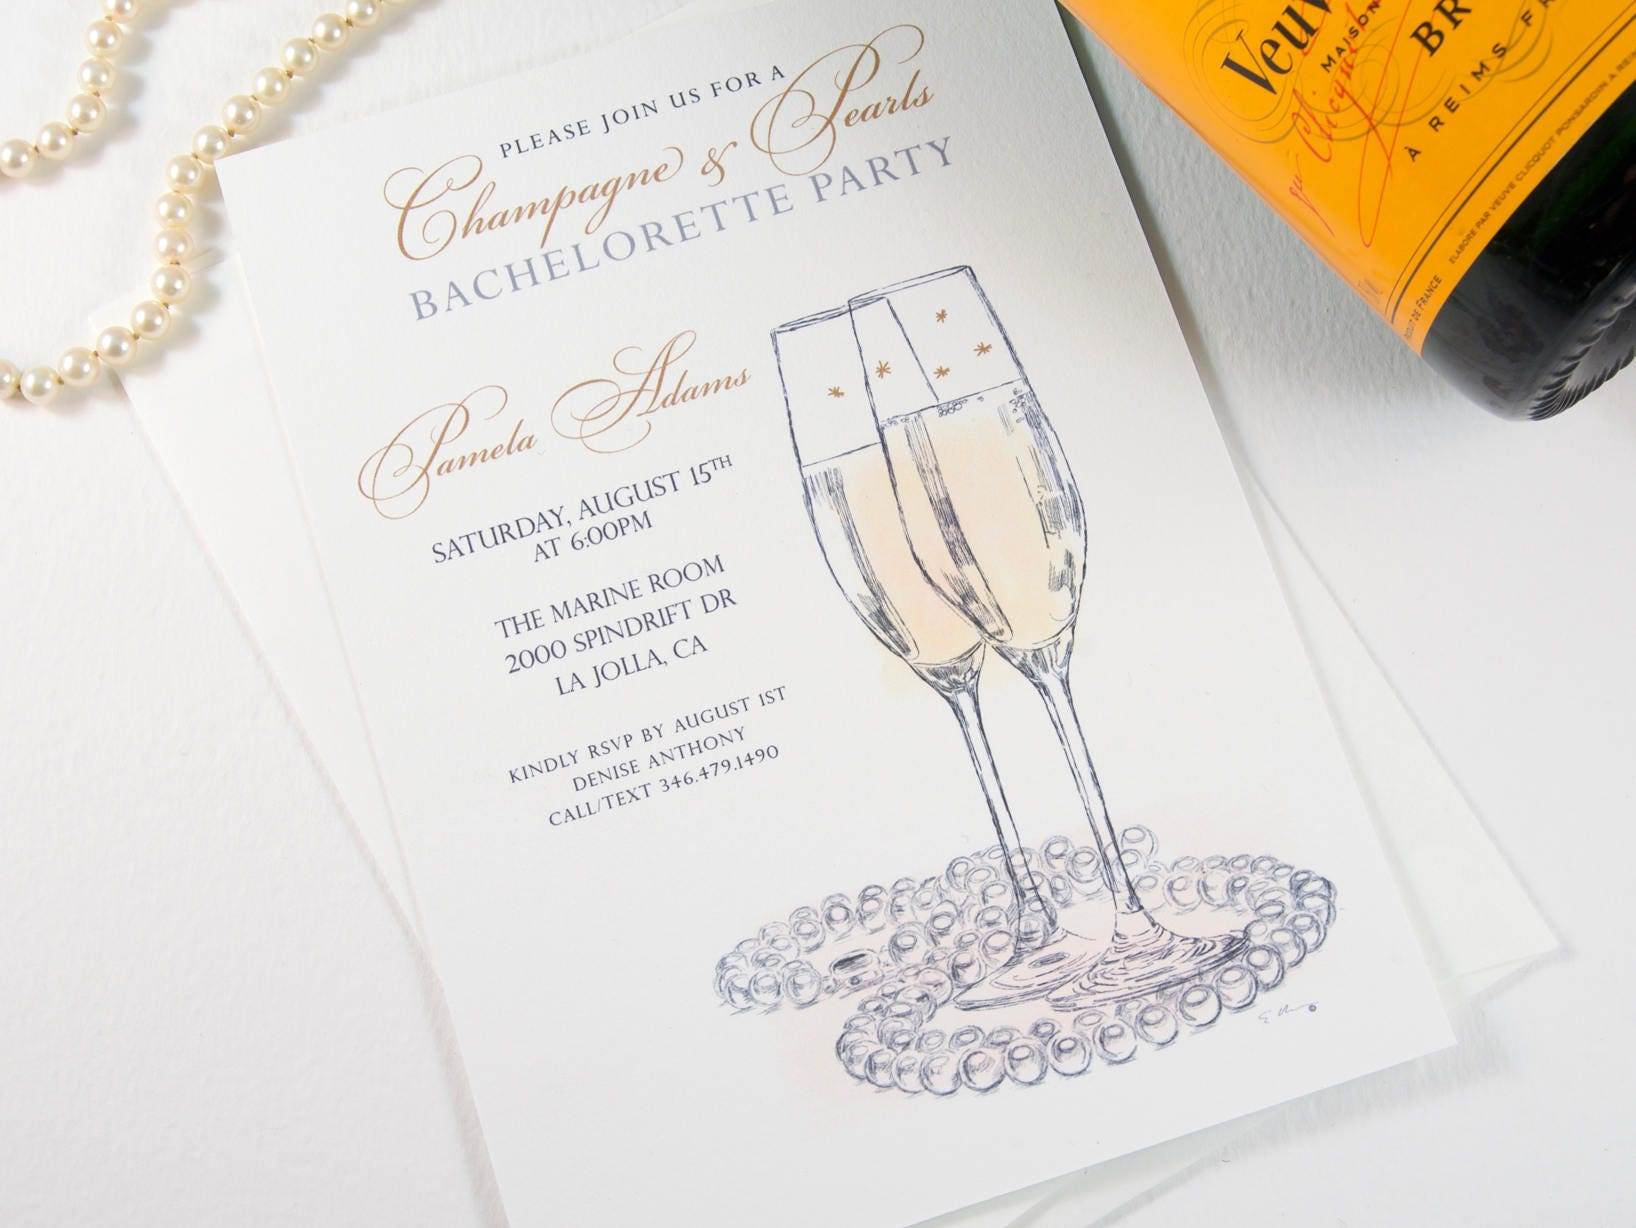 Bachelorette Party Invitations Champagne and Pearls